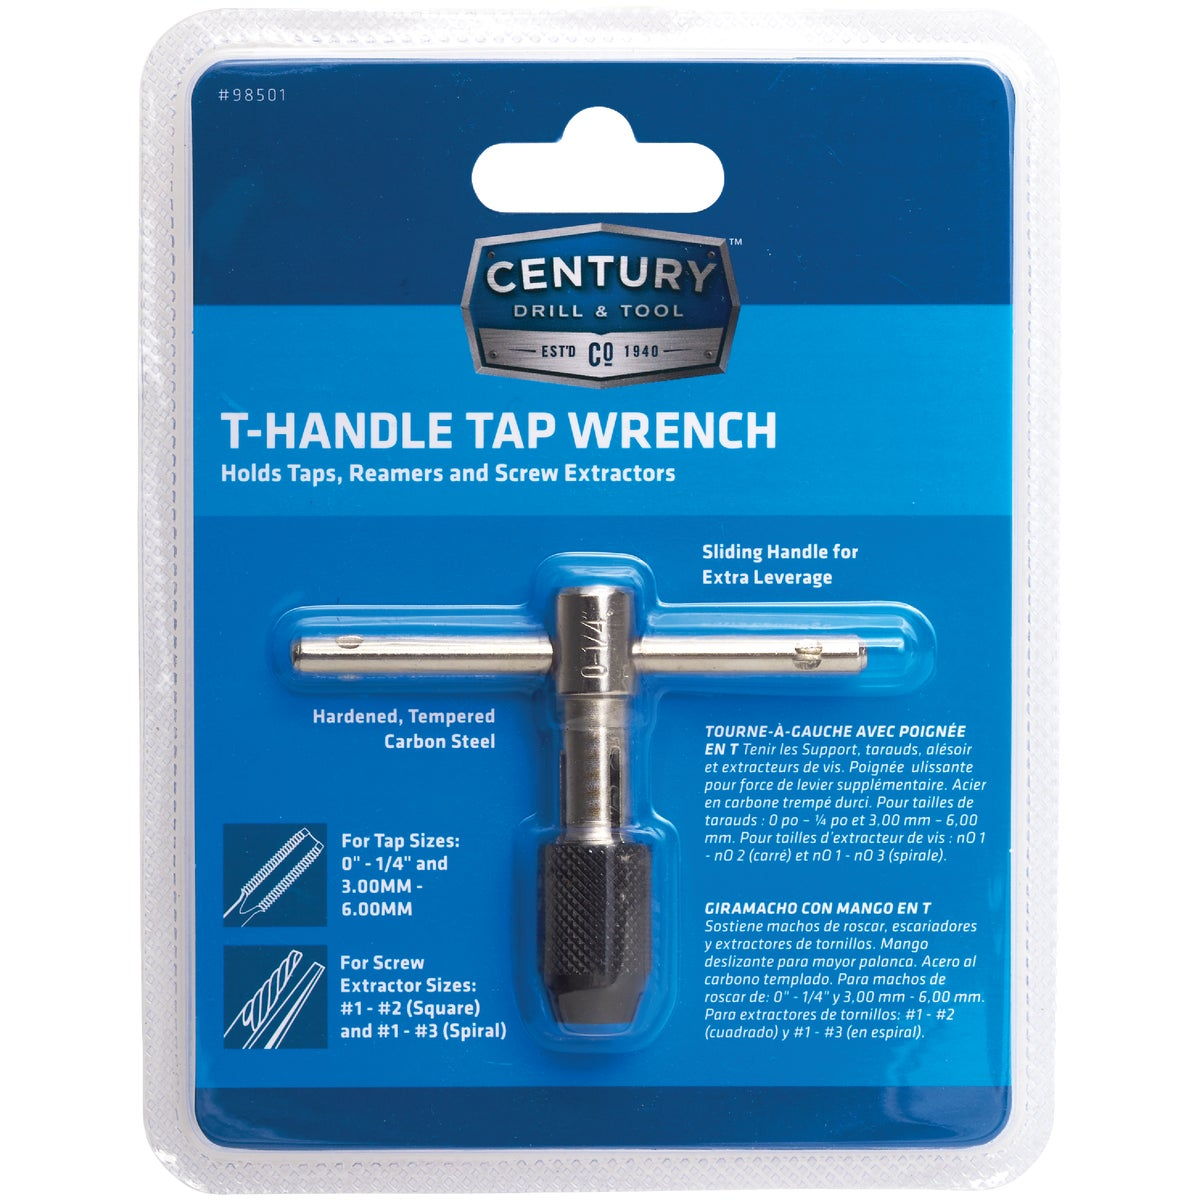 TR-1E T-HANDL TAP WRENCH